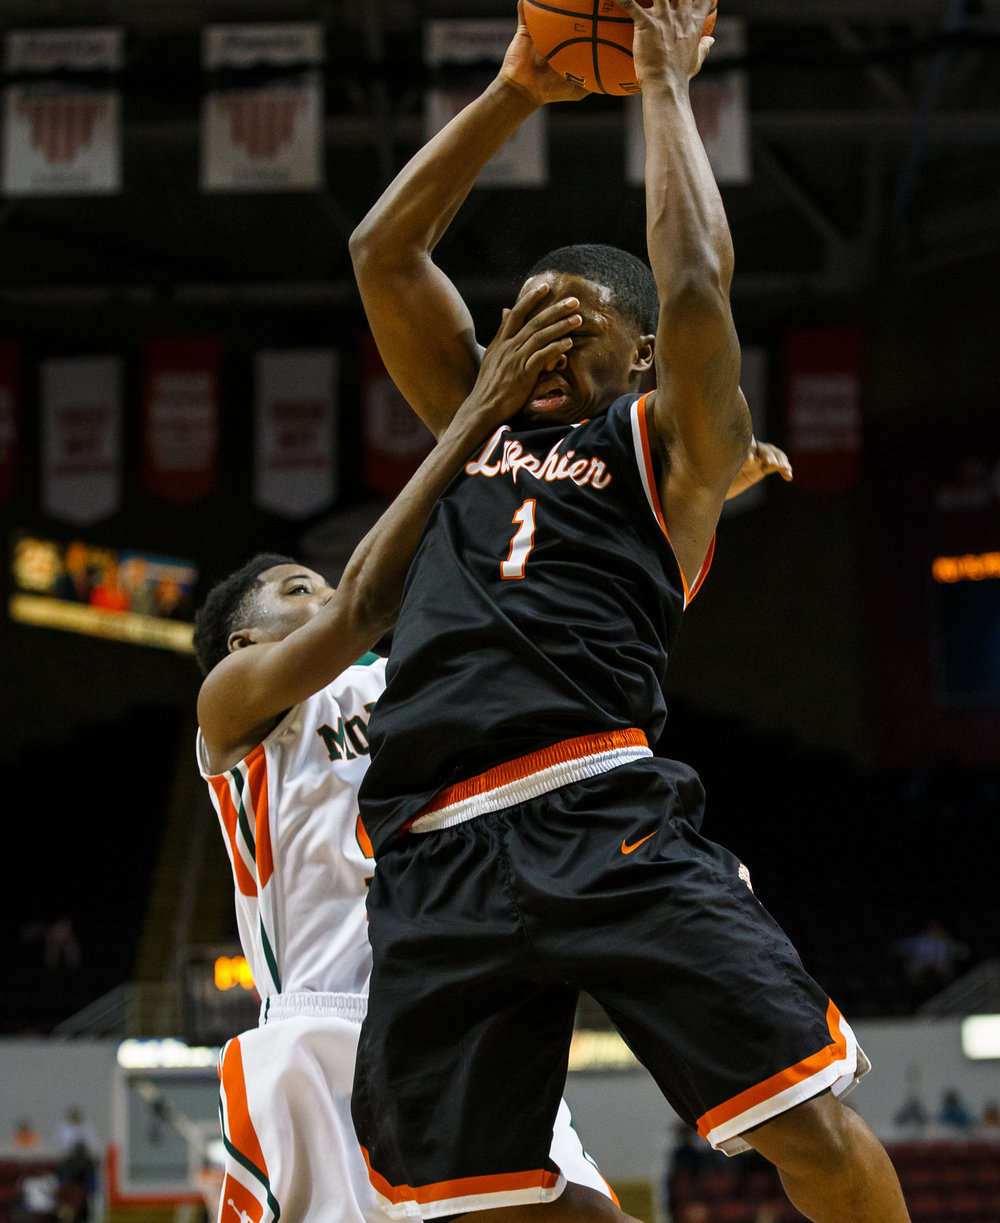 Lanphier's Yaakema Rose (1) takes a shot to the face with no foul call as he pulls in a rebound in the fourth quarter during the semifinals of the IHSA Class 3A Basketball State Finals at Carver Arena, Friday, March 17, 2017, in Peoria, Ill. [Justin L. Fowler/The State Journal-Register]